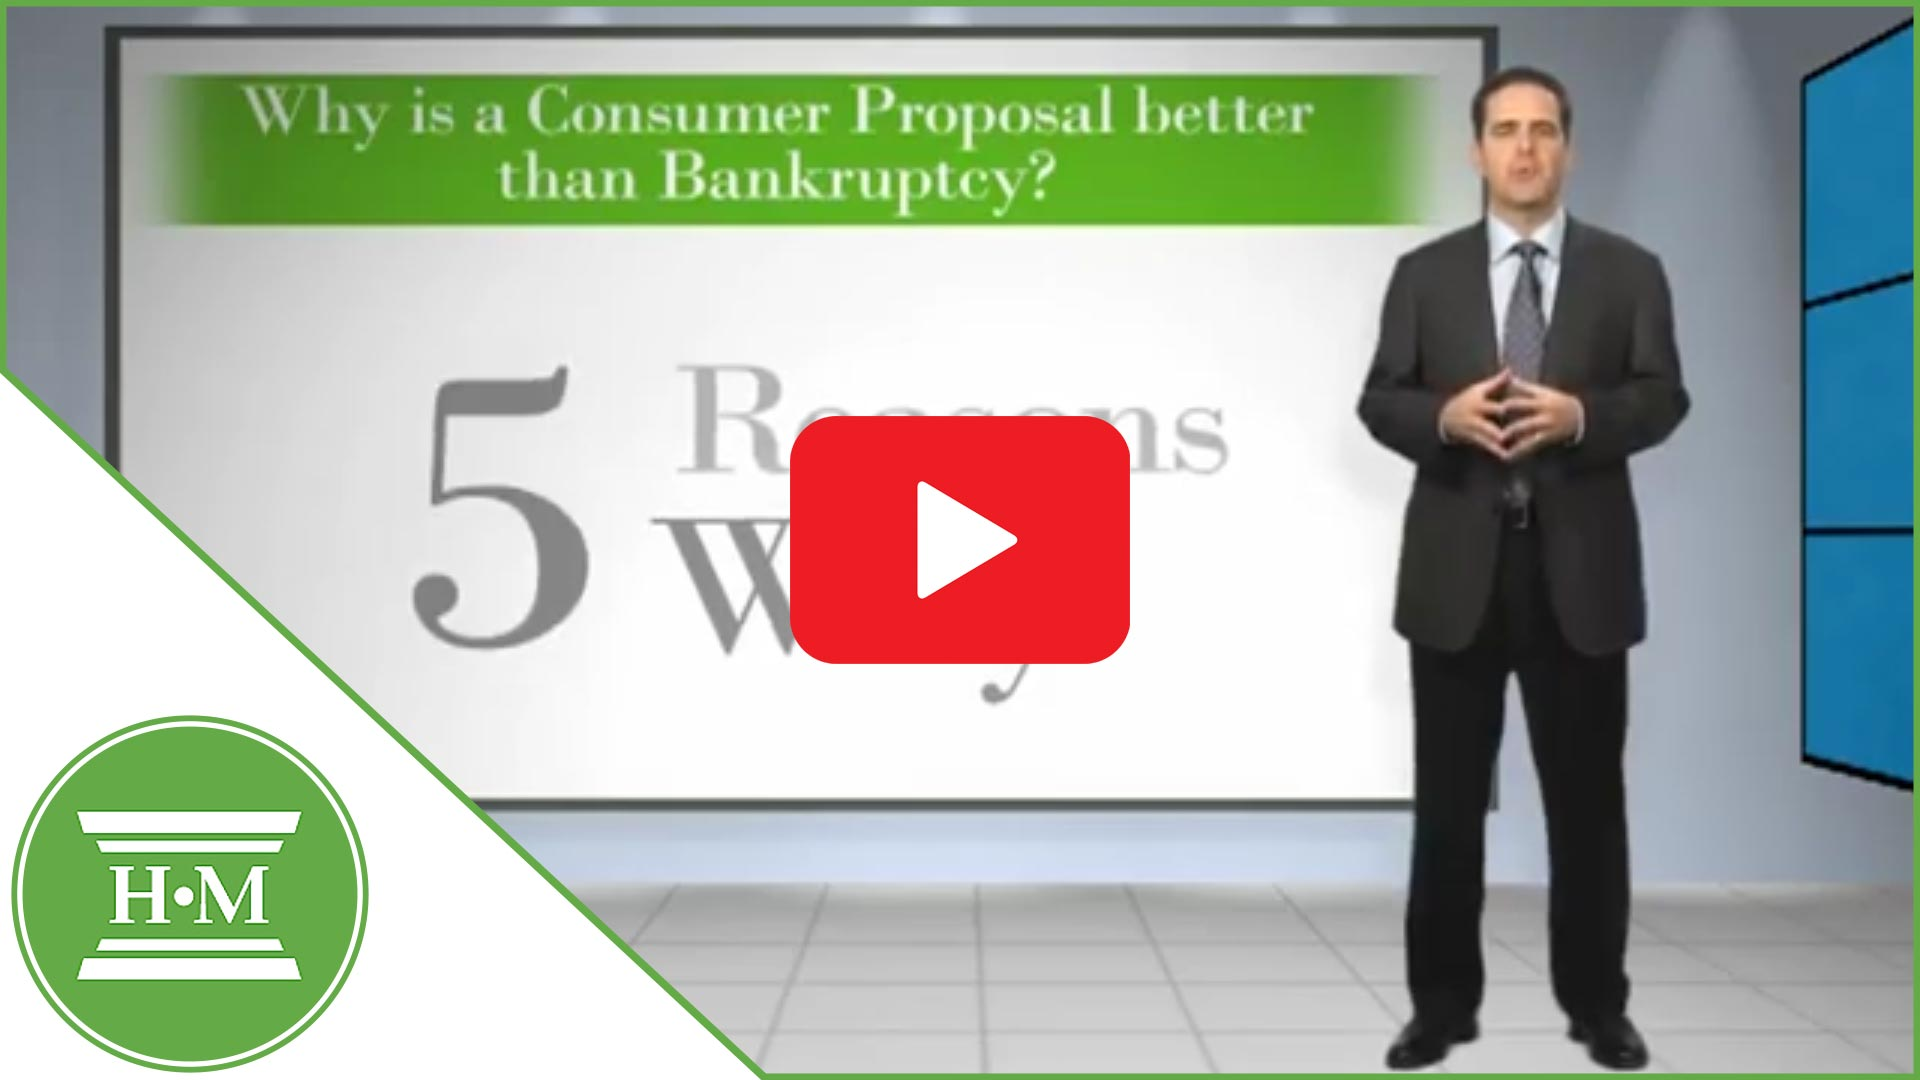 5 reasons why a consumer proposal is better than bankruptcy